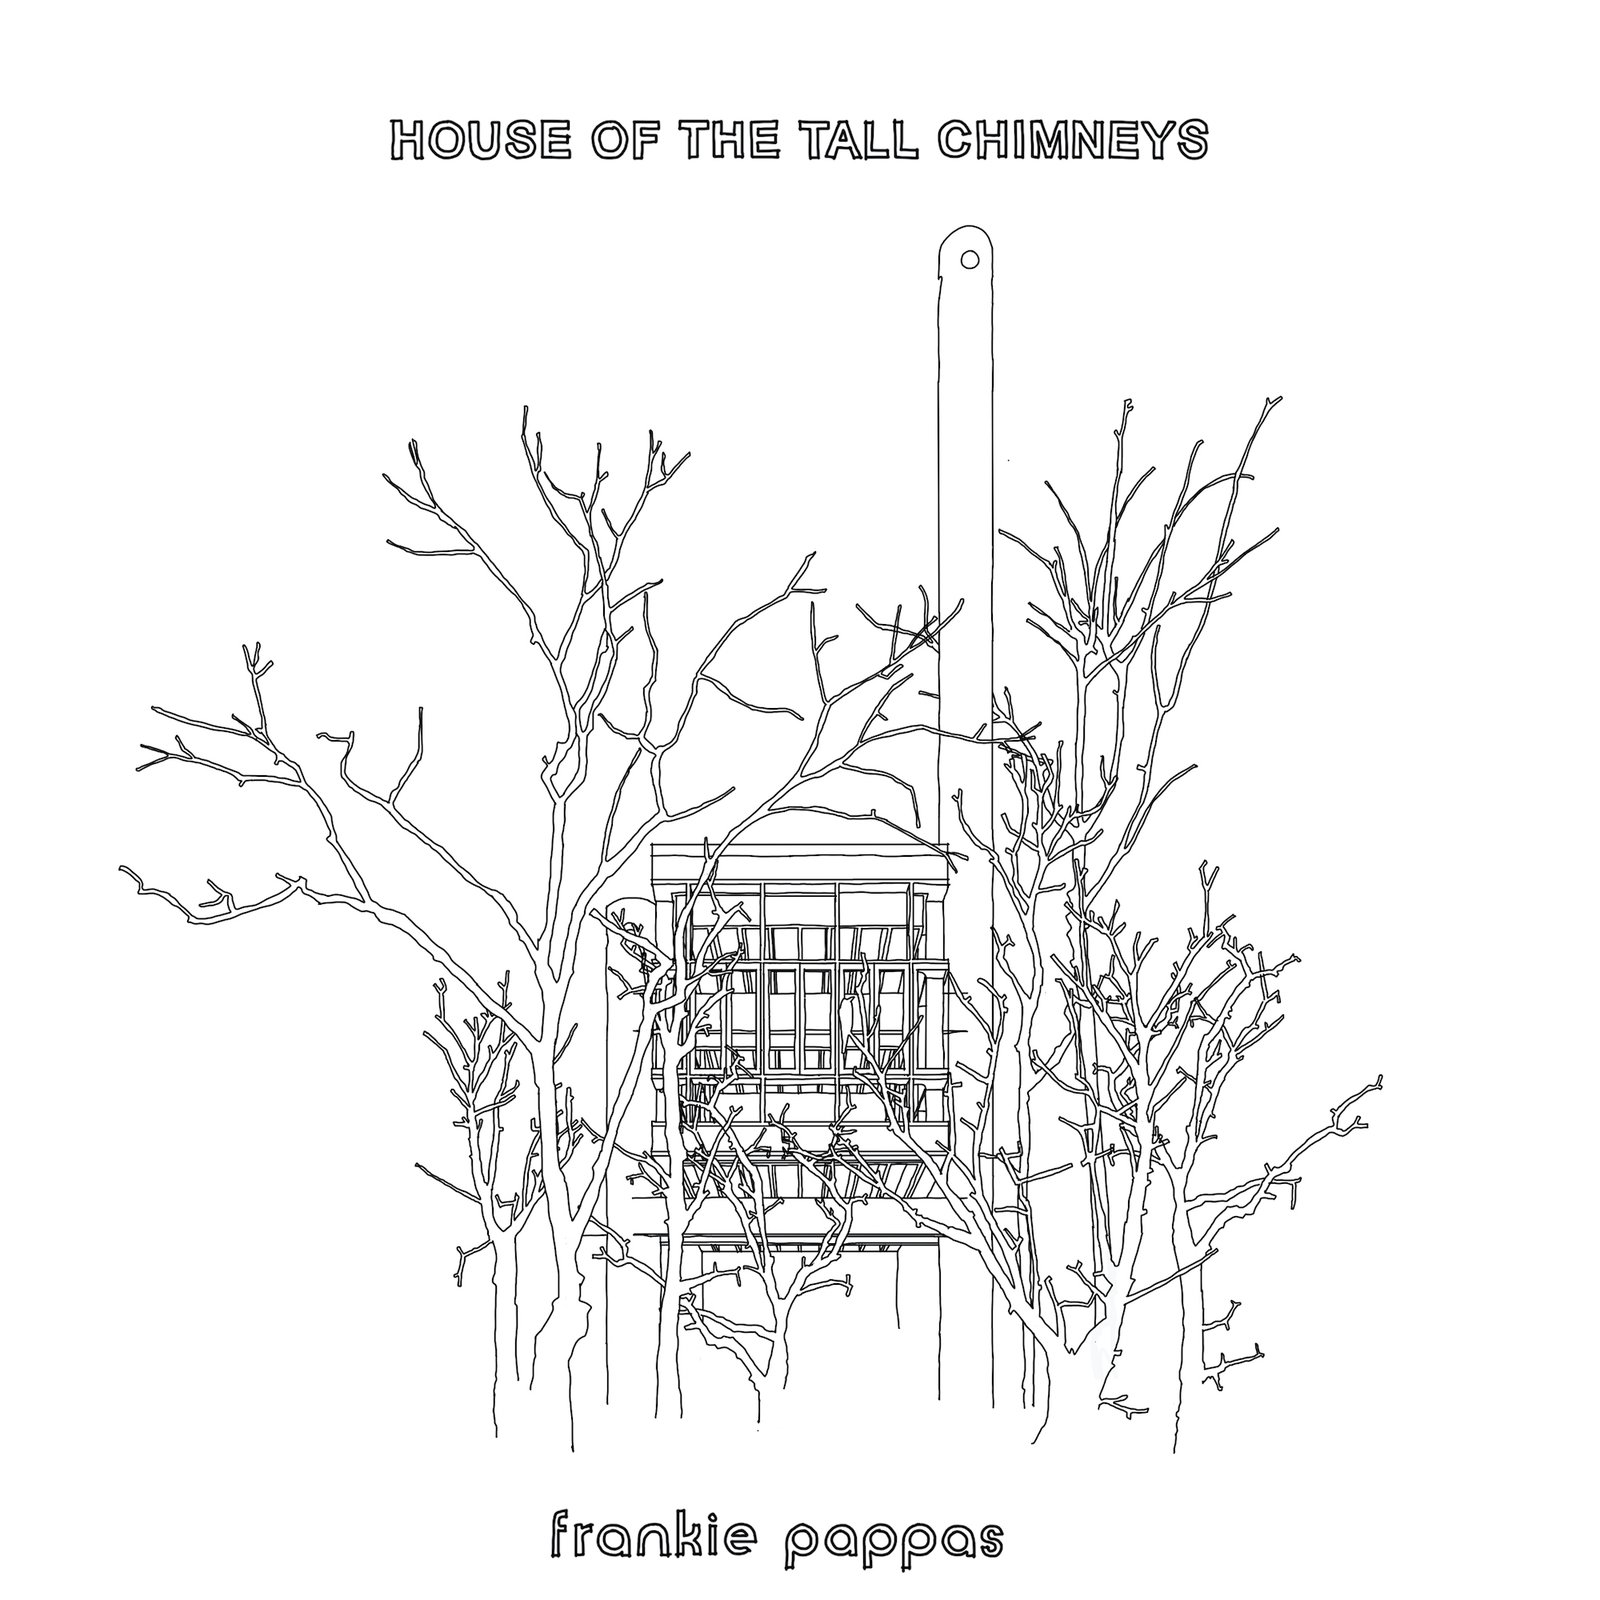 Drawing of House of the Tall Chimneys by Frankie Pappas.